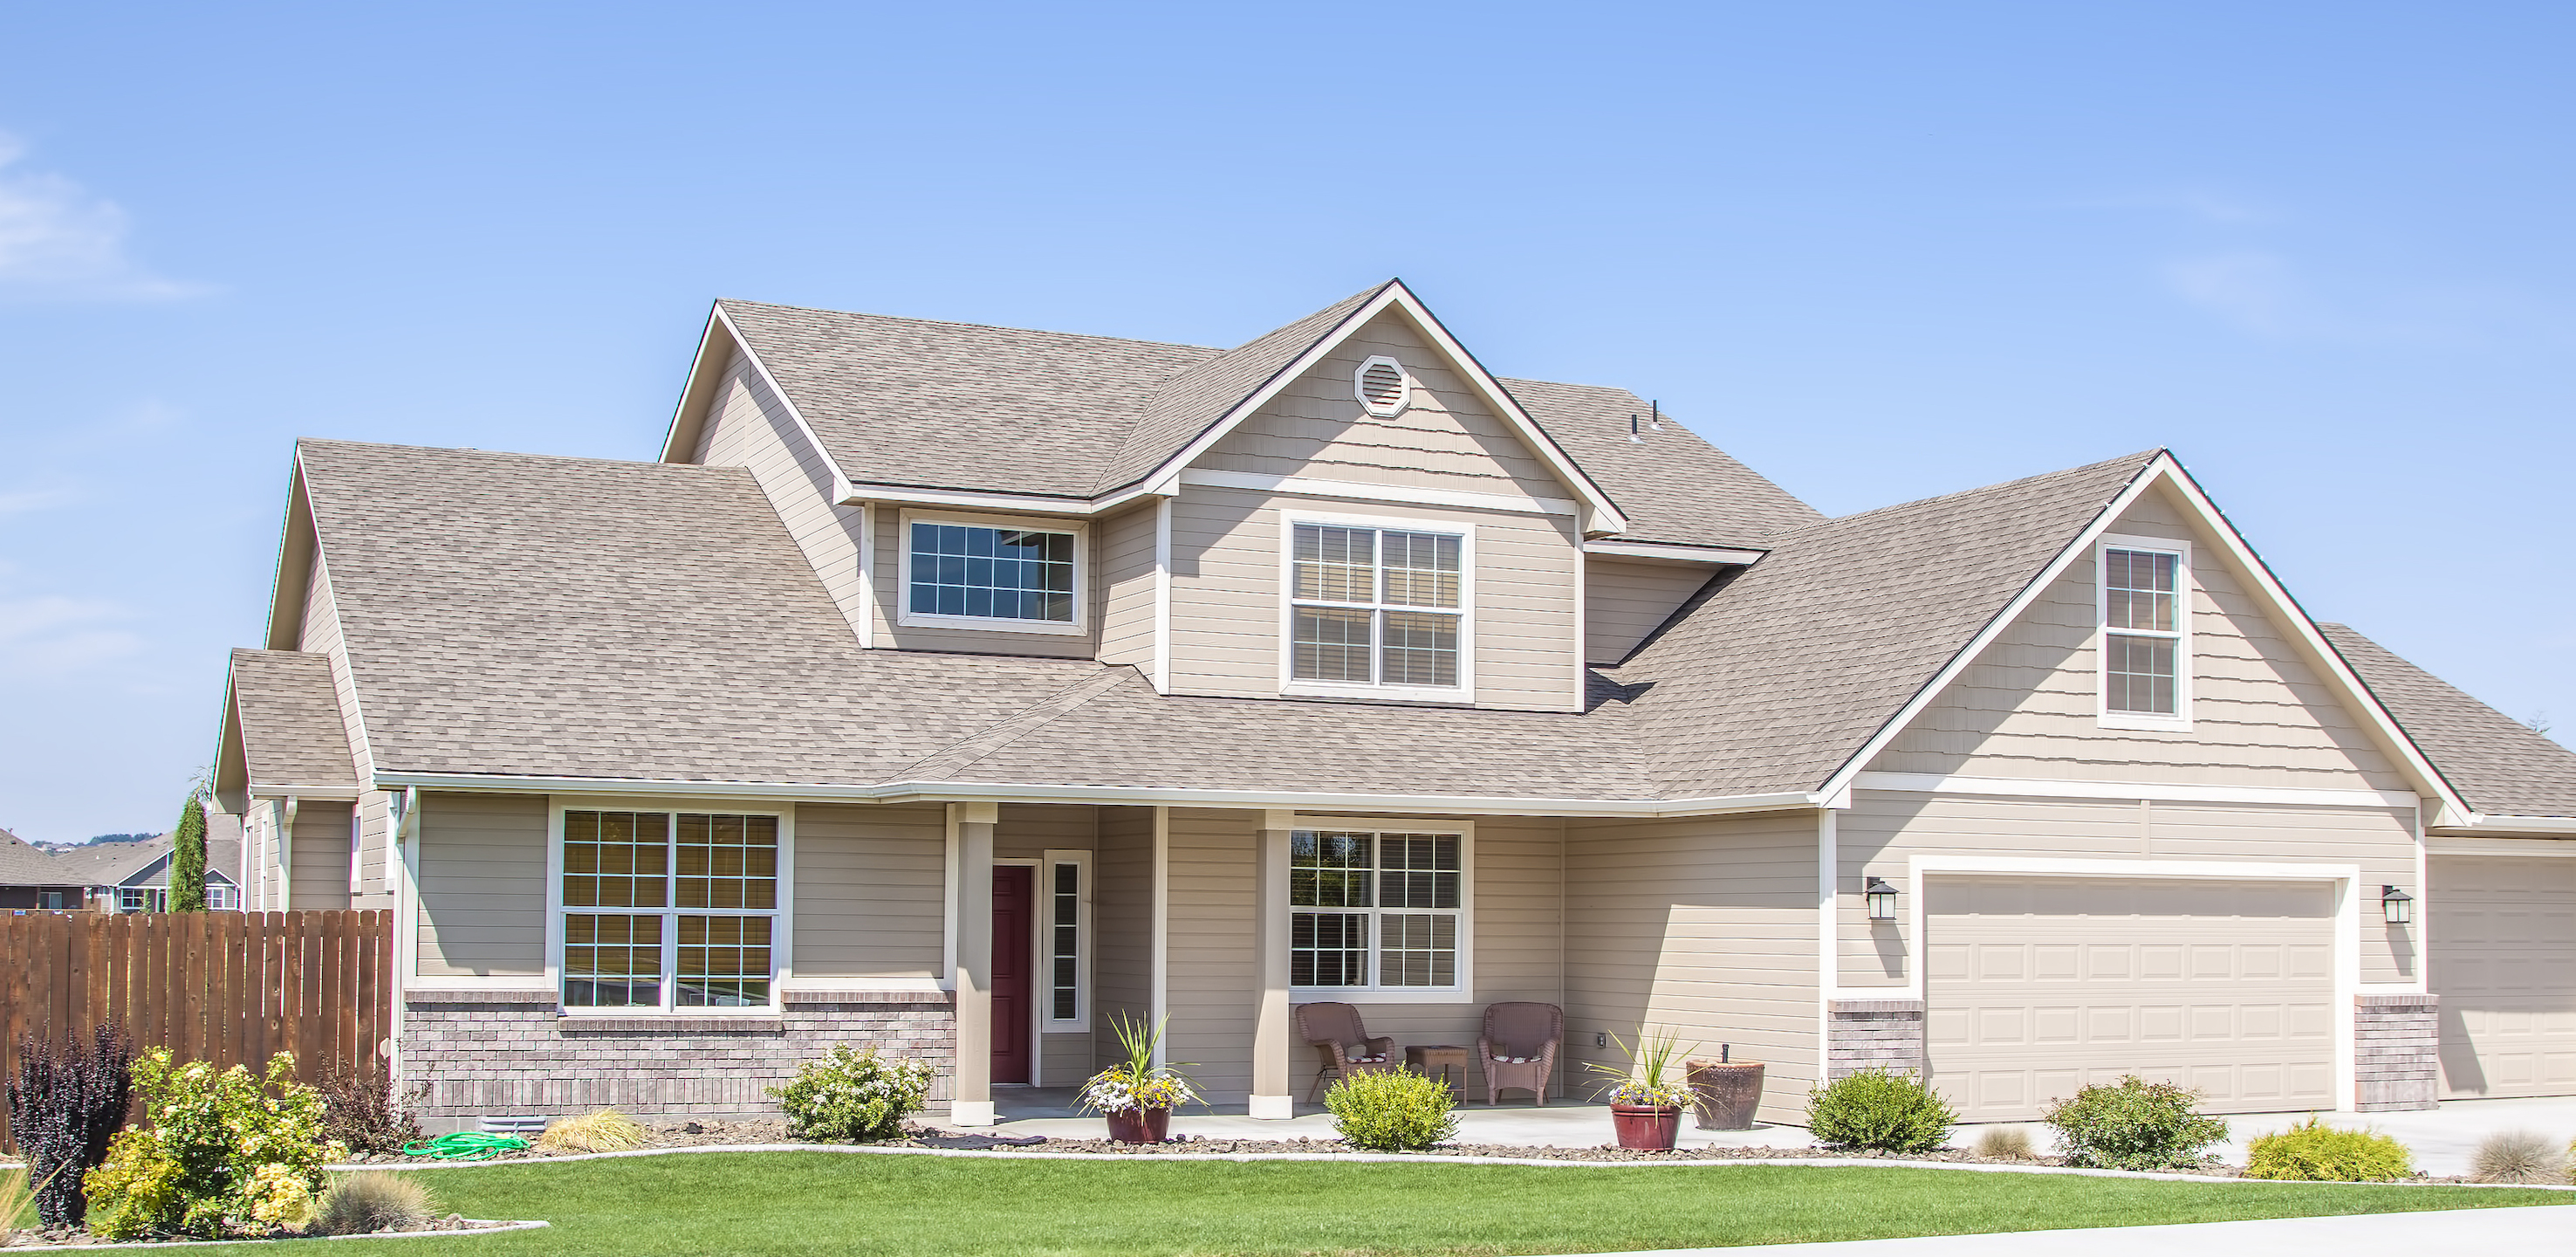 Homes for sale in park hill school district